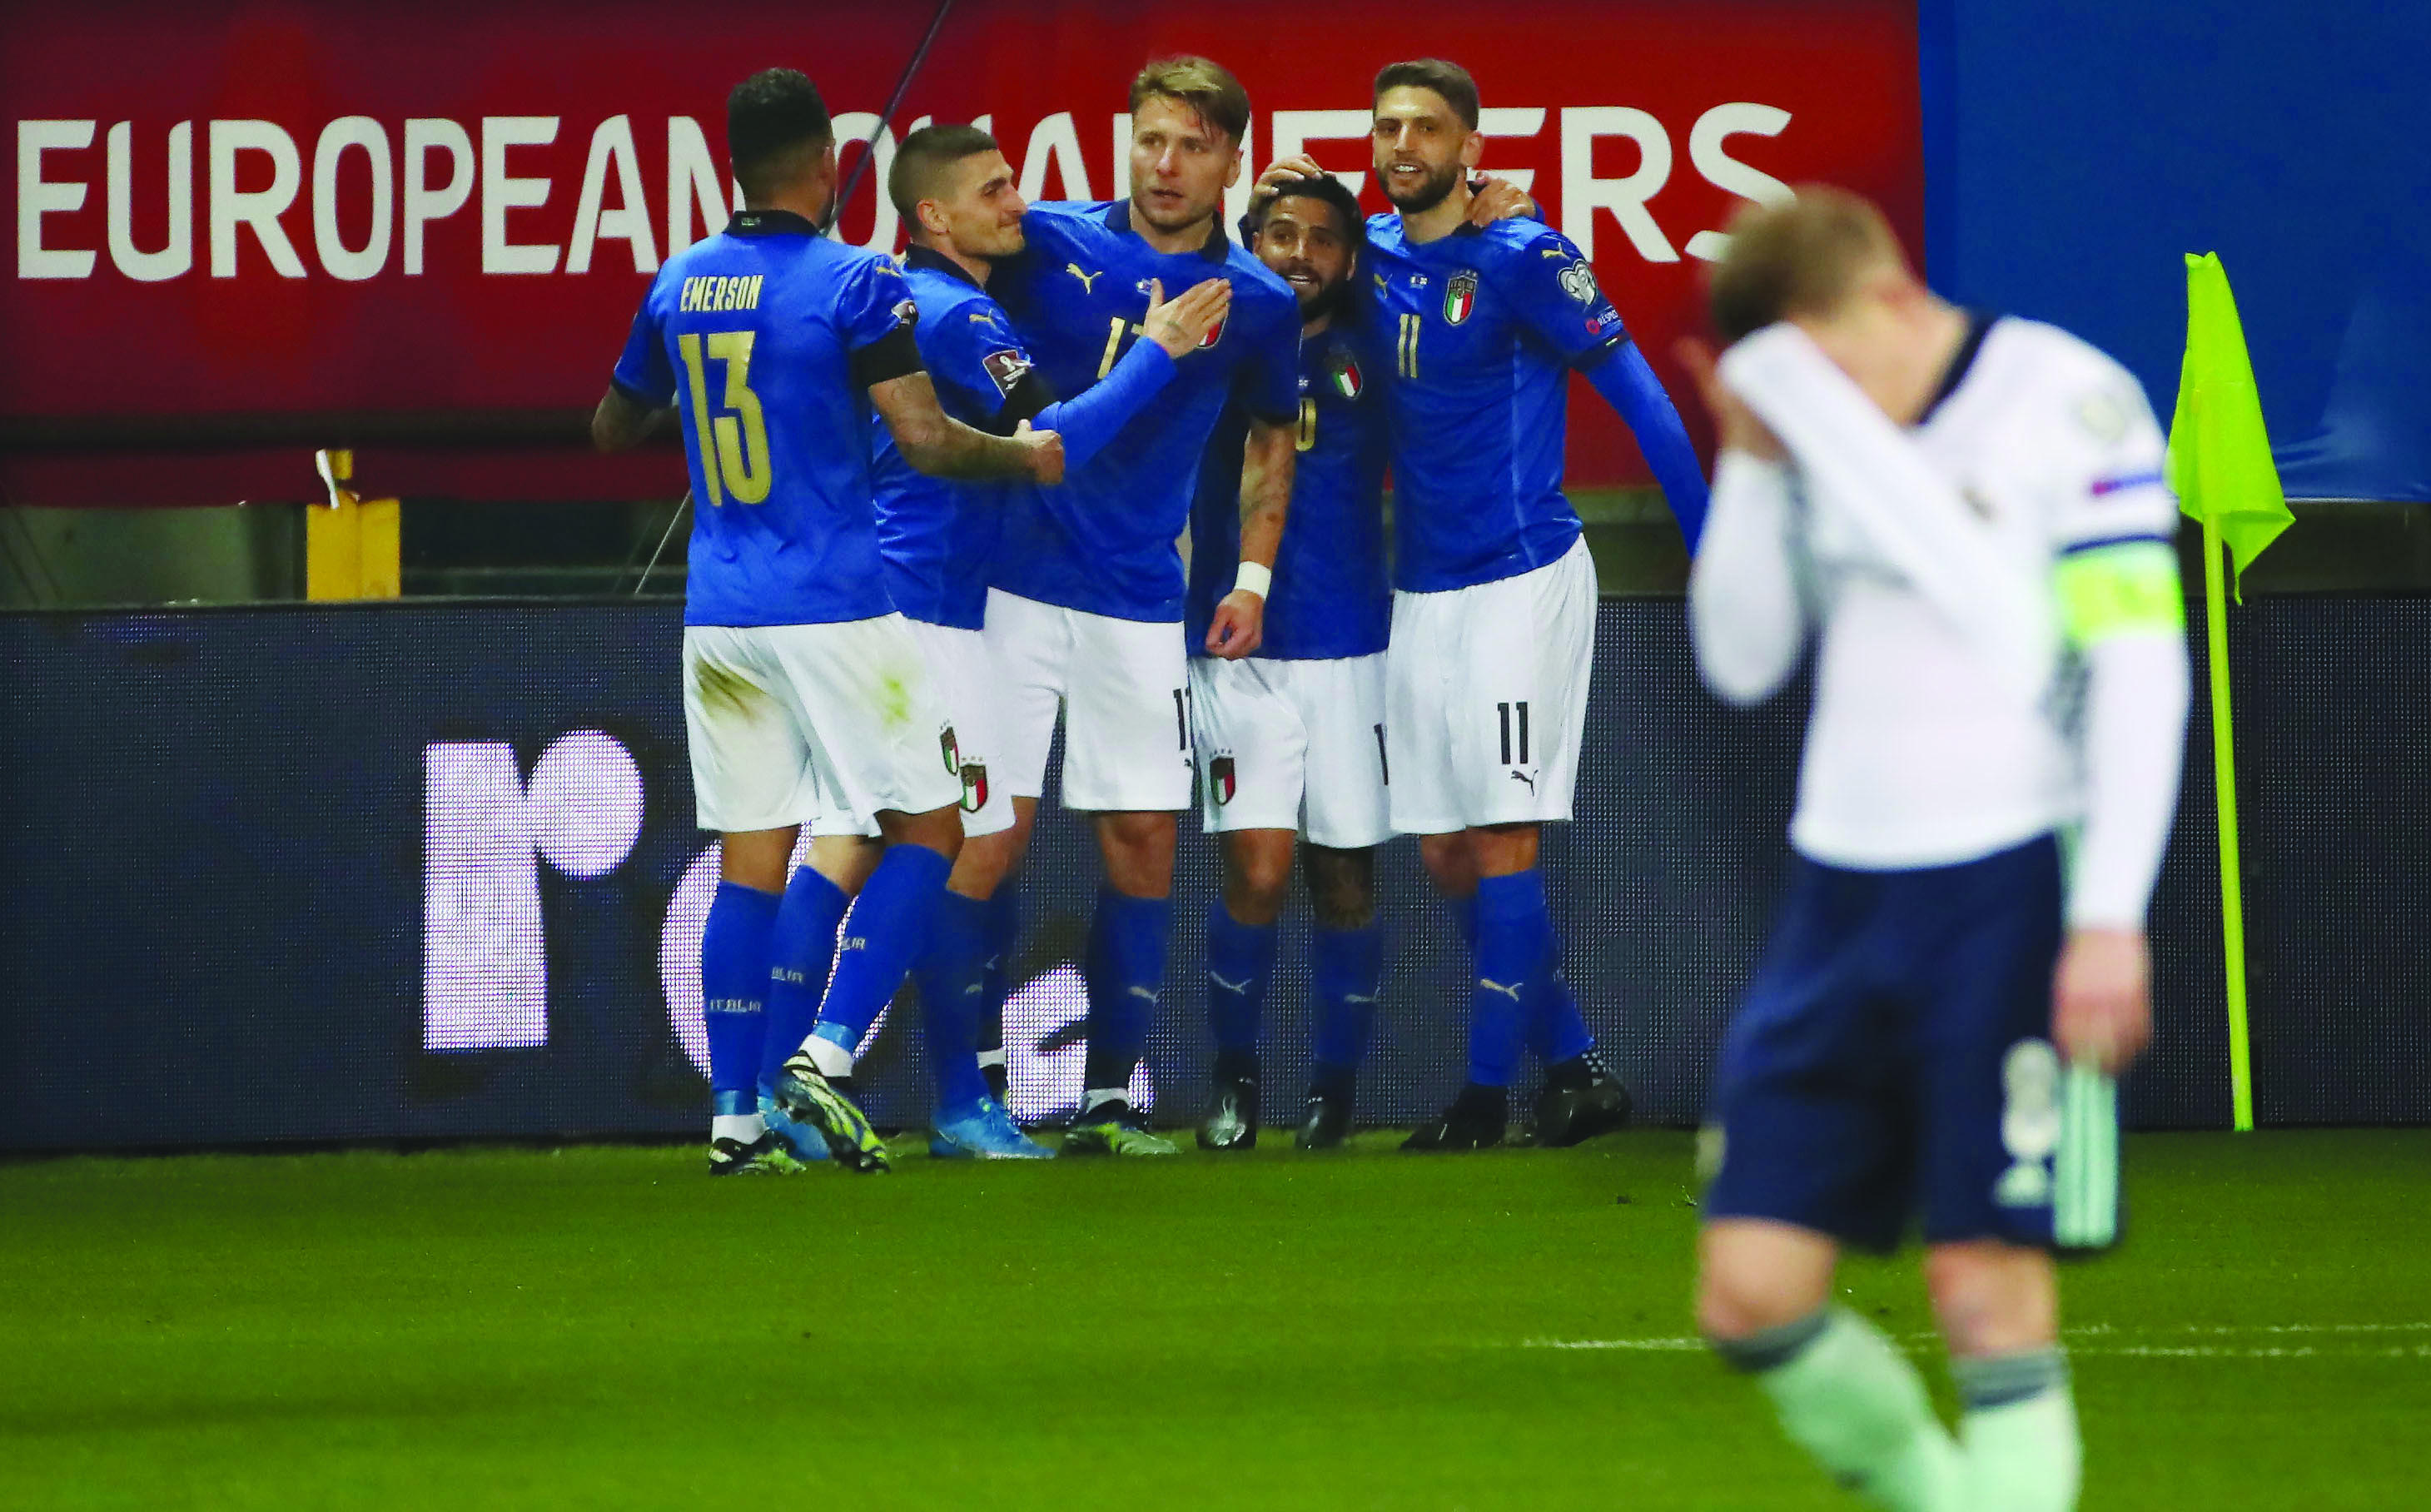 Italy's Ciro Immobile is tipped to be the tournament's top goal-scorer